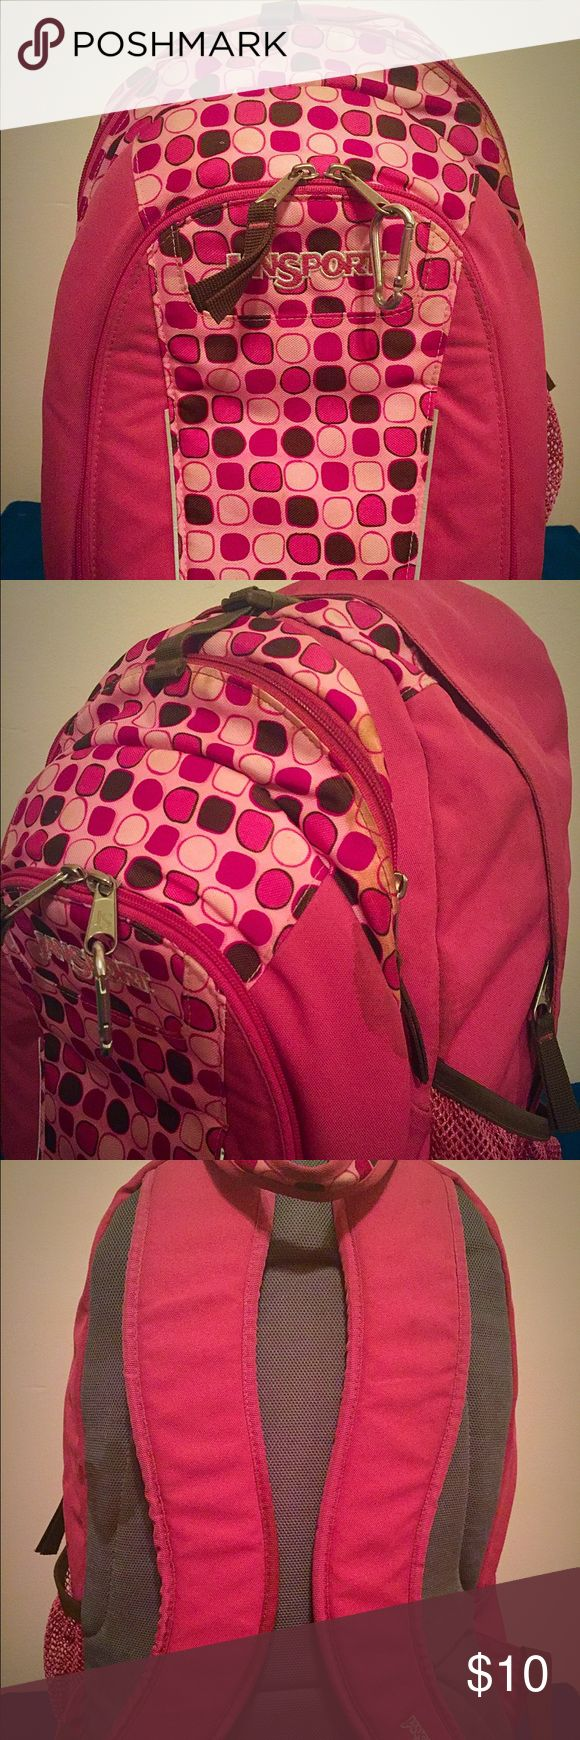 Adorable Pink Jansport Backpack This is a very well loved backpack. It has multiple pockets (including an insulated one), a cup holder, padded straps, etc. There are some stains on the backpack, but in great condition other wise! Jansport Bags Backpacks